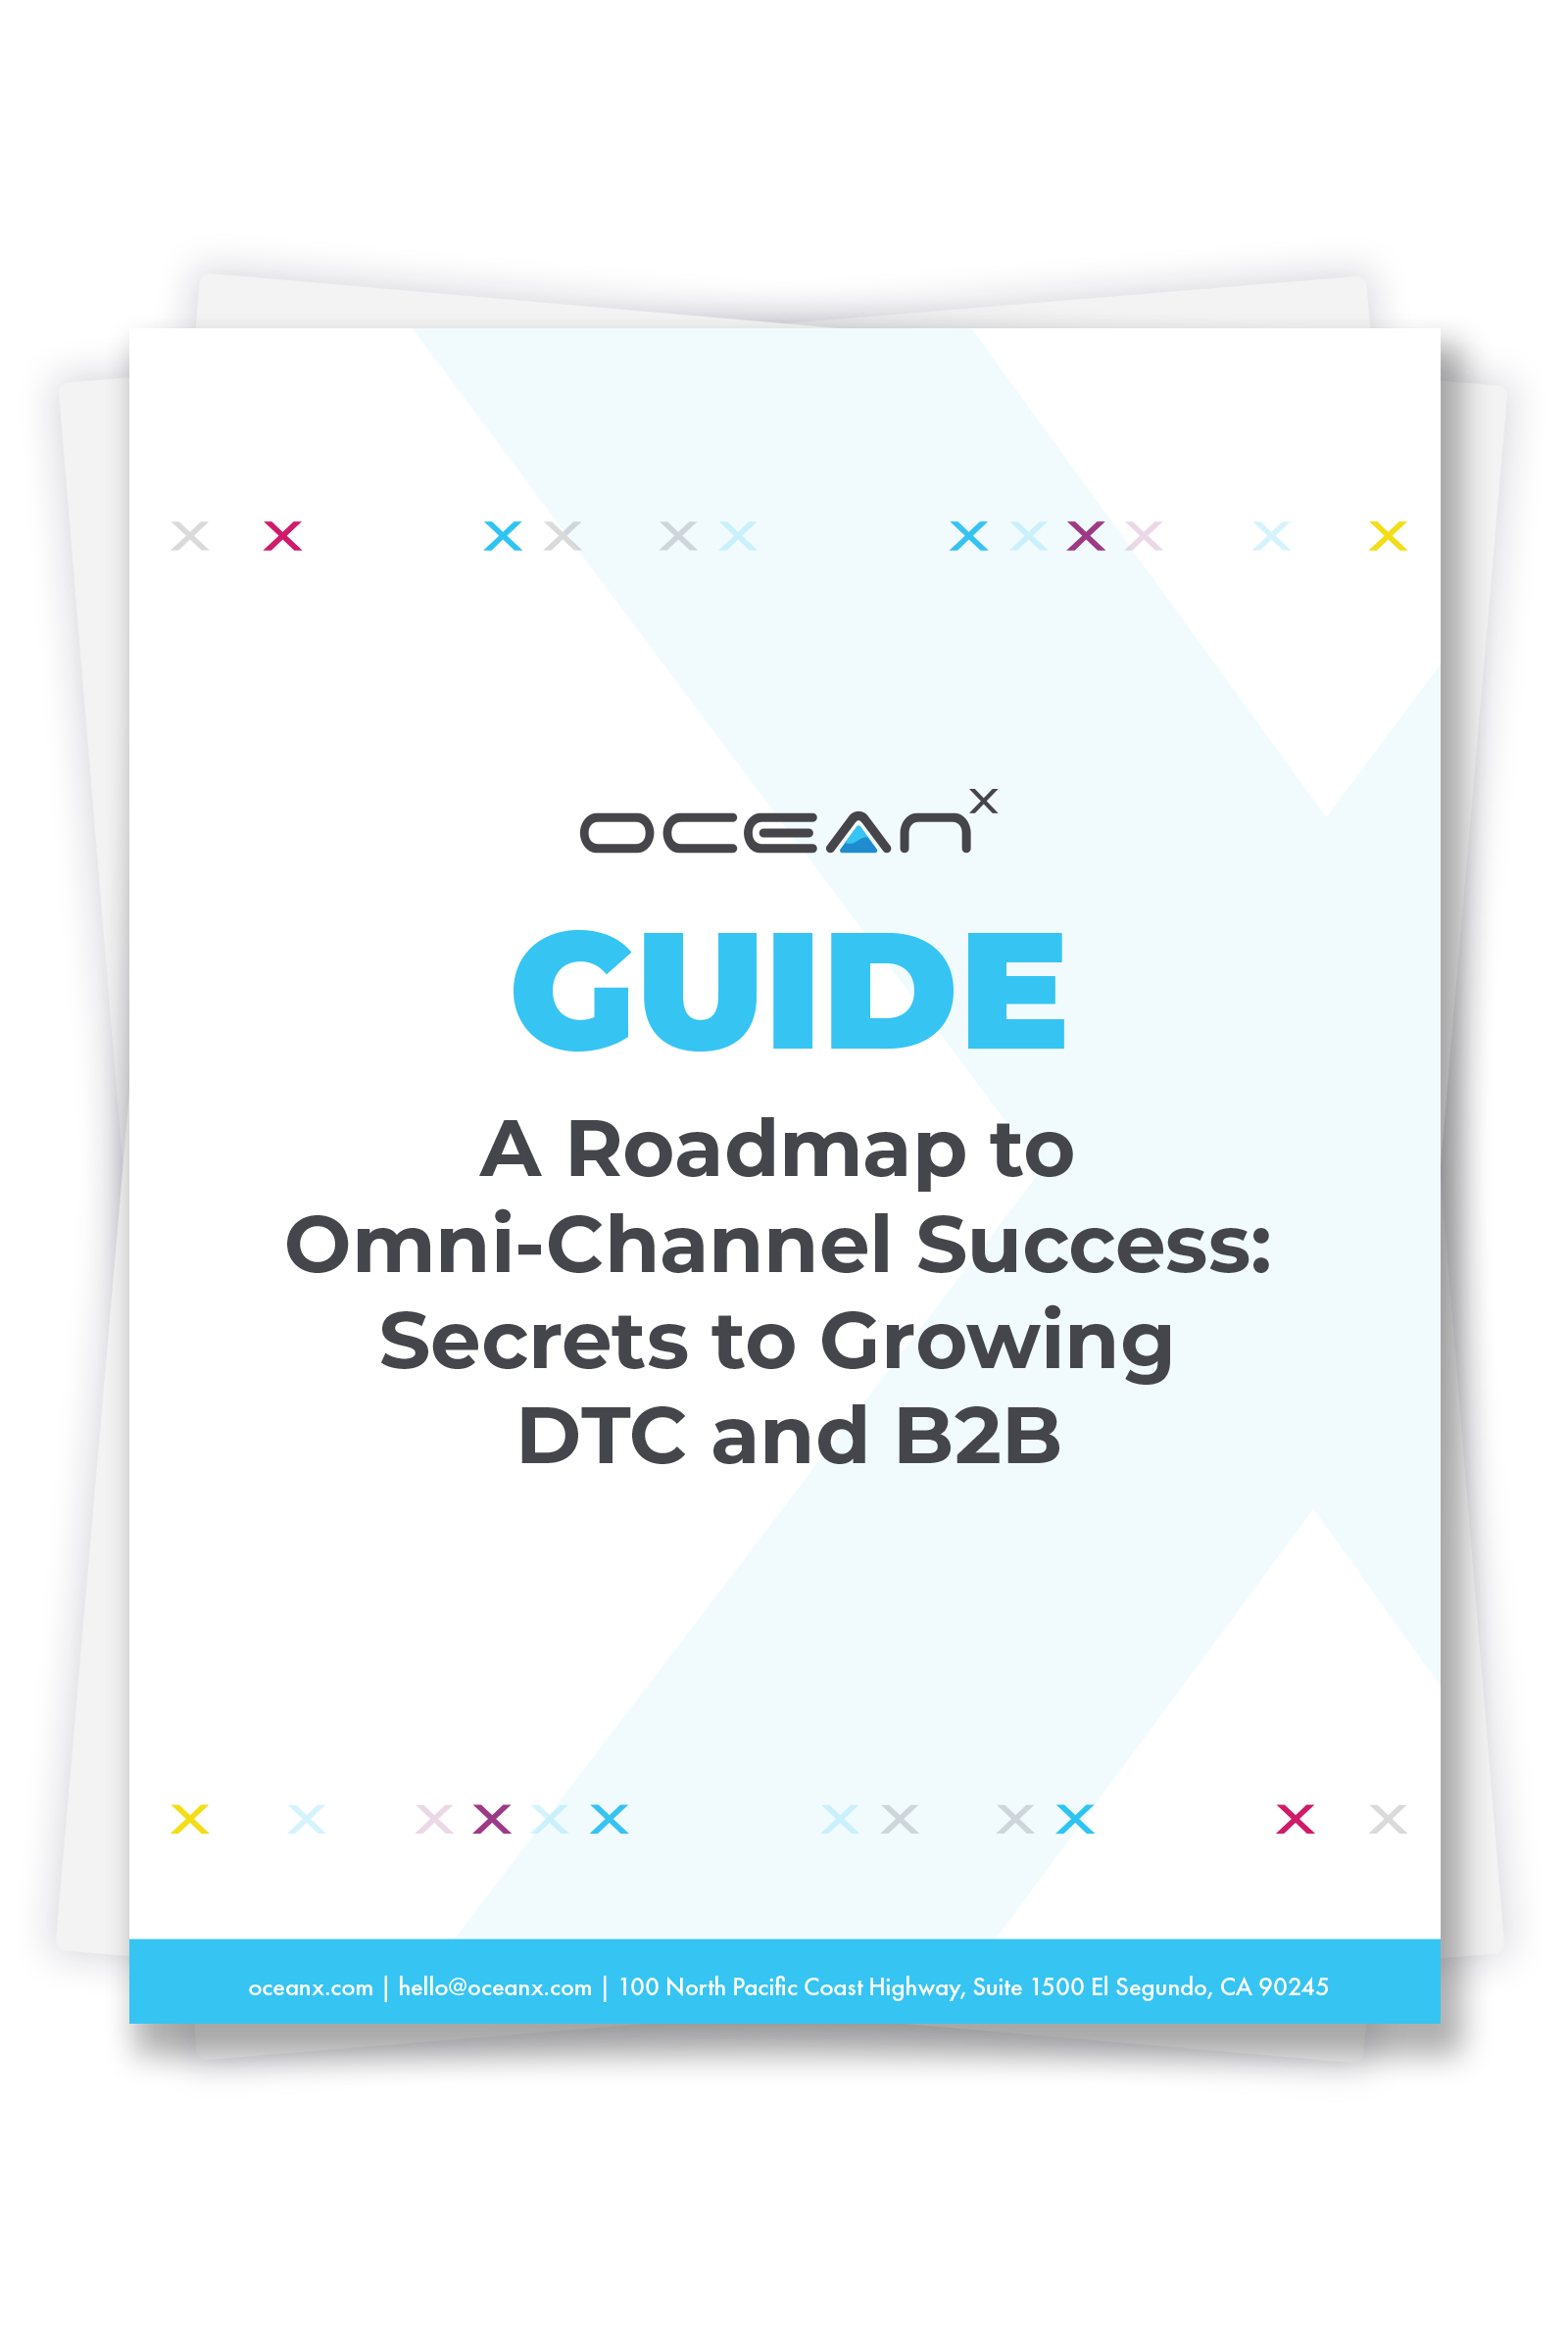 1084485_Cover Image (A Roadmap to Omni Channel Success Secrets to Growing DTC and B2B)_01_060721